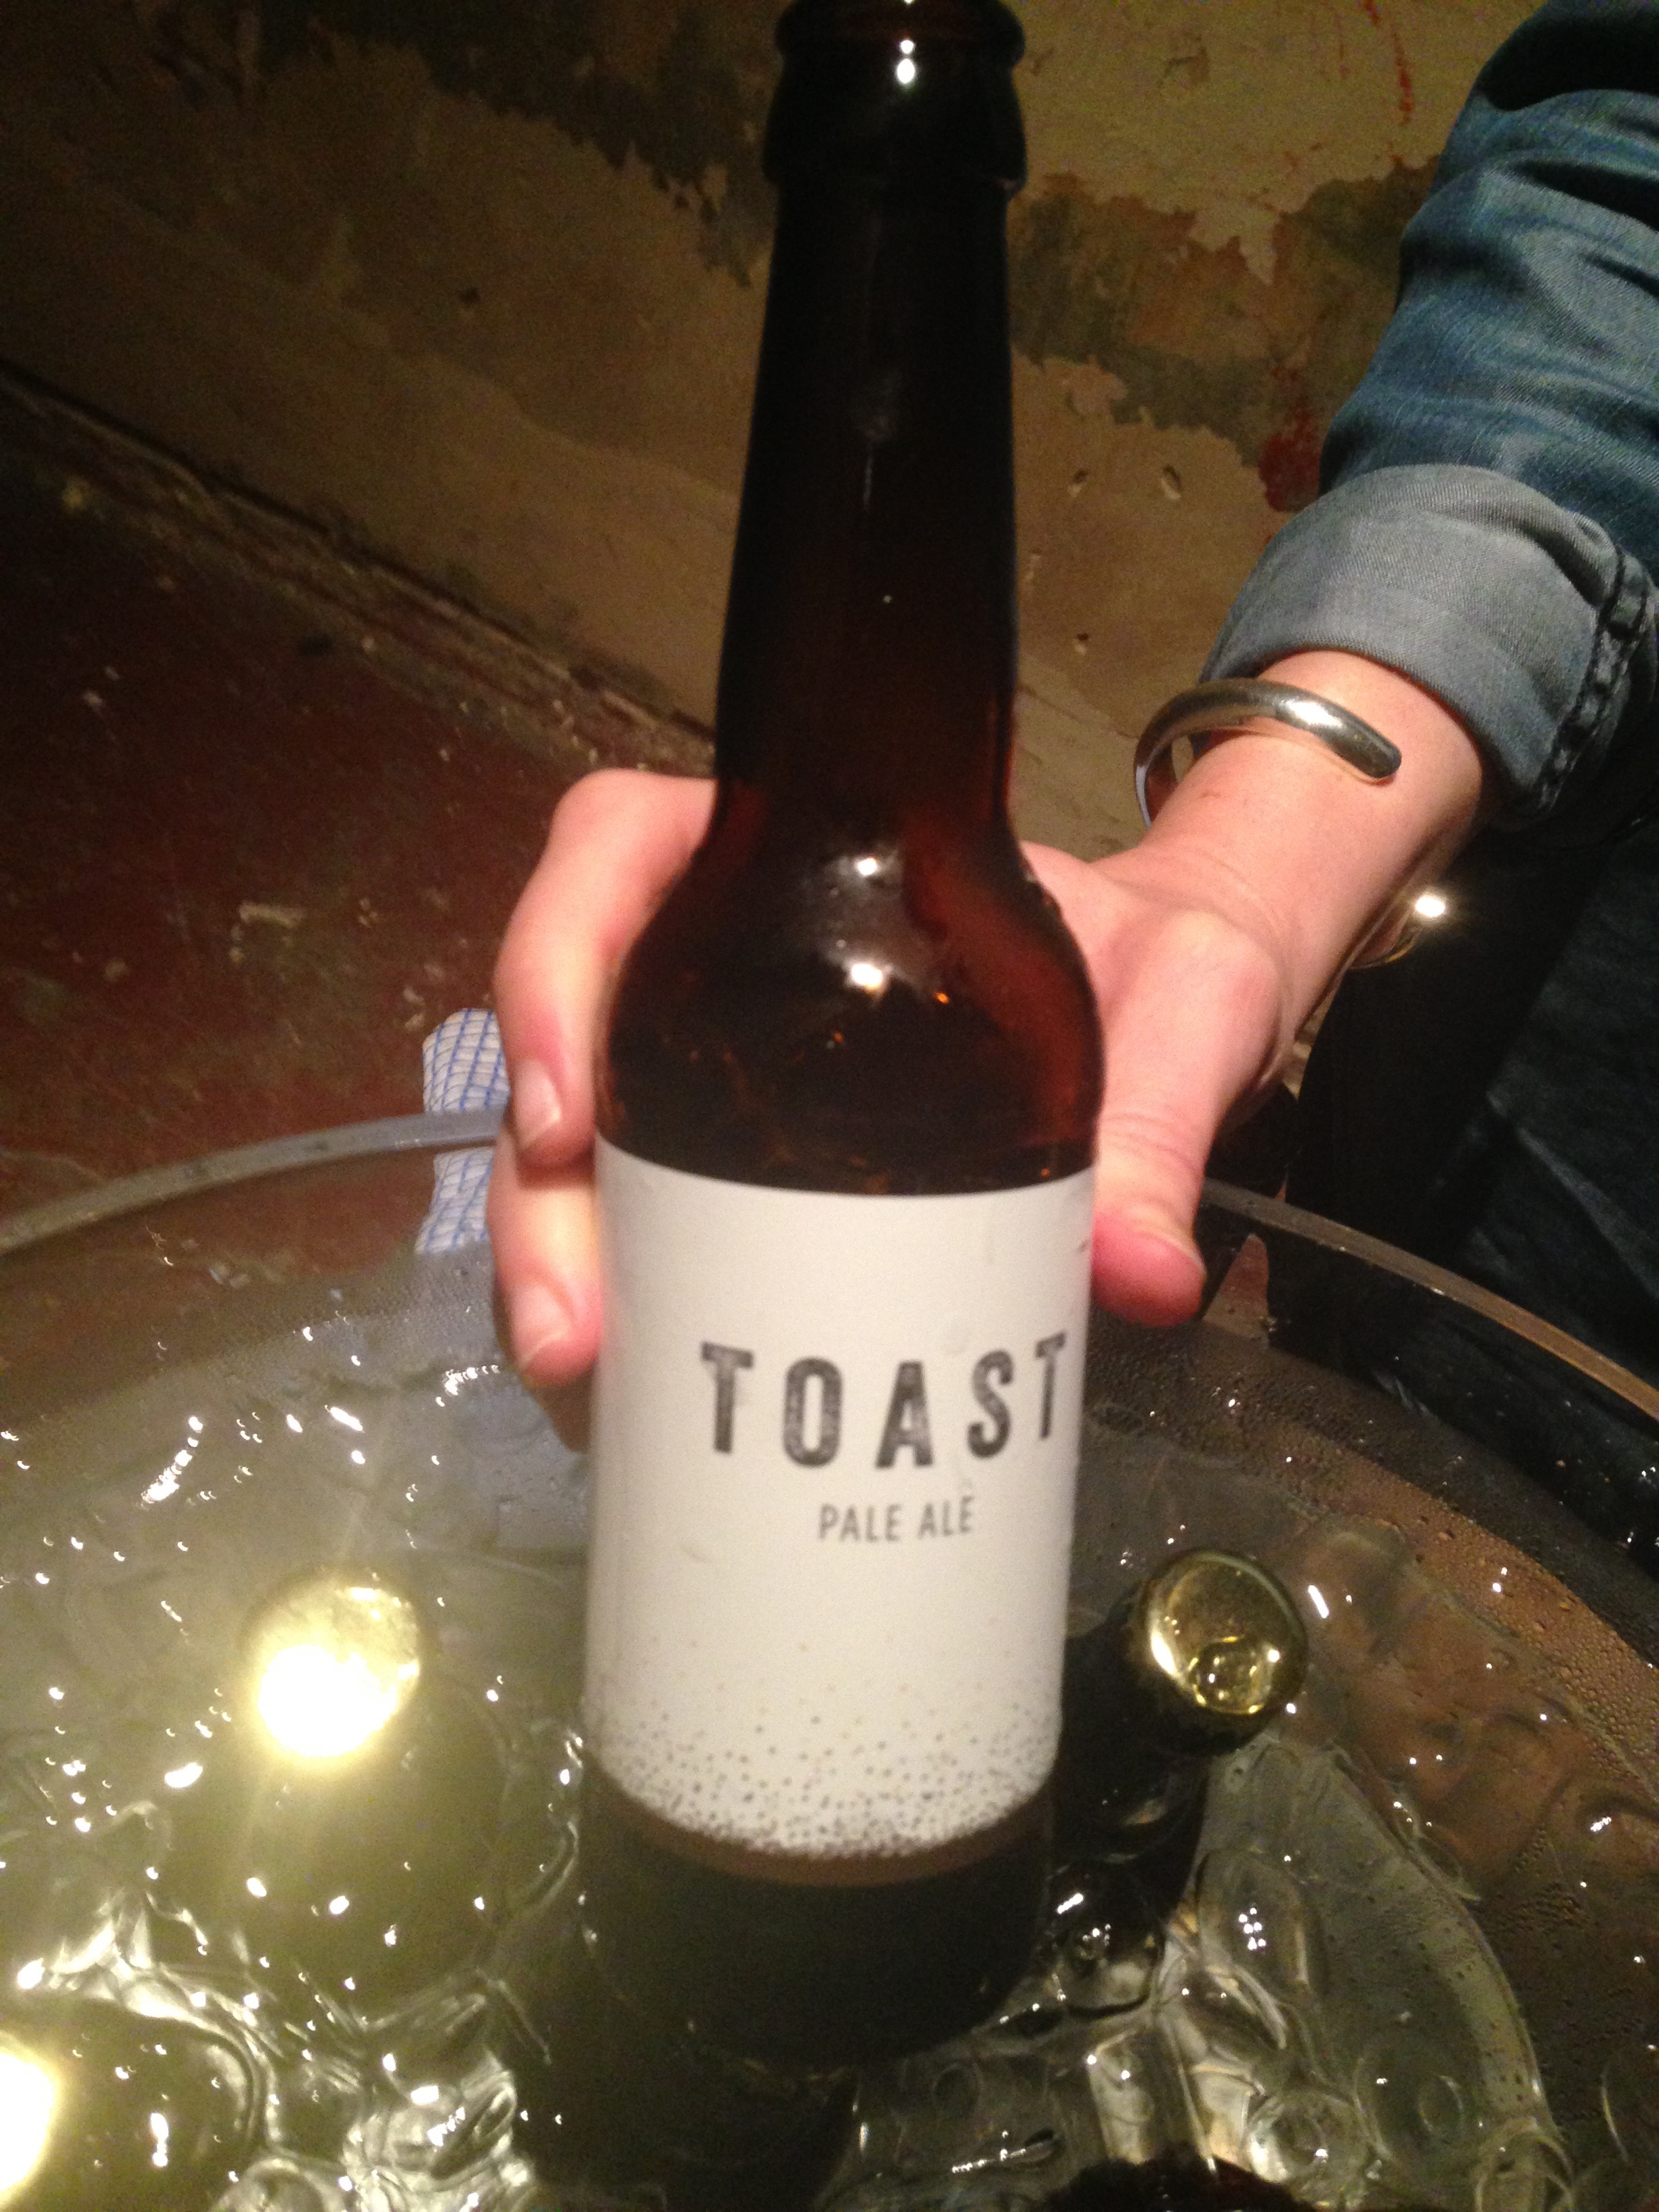 Toast ale beer